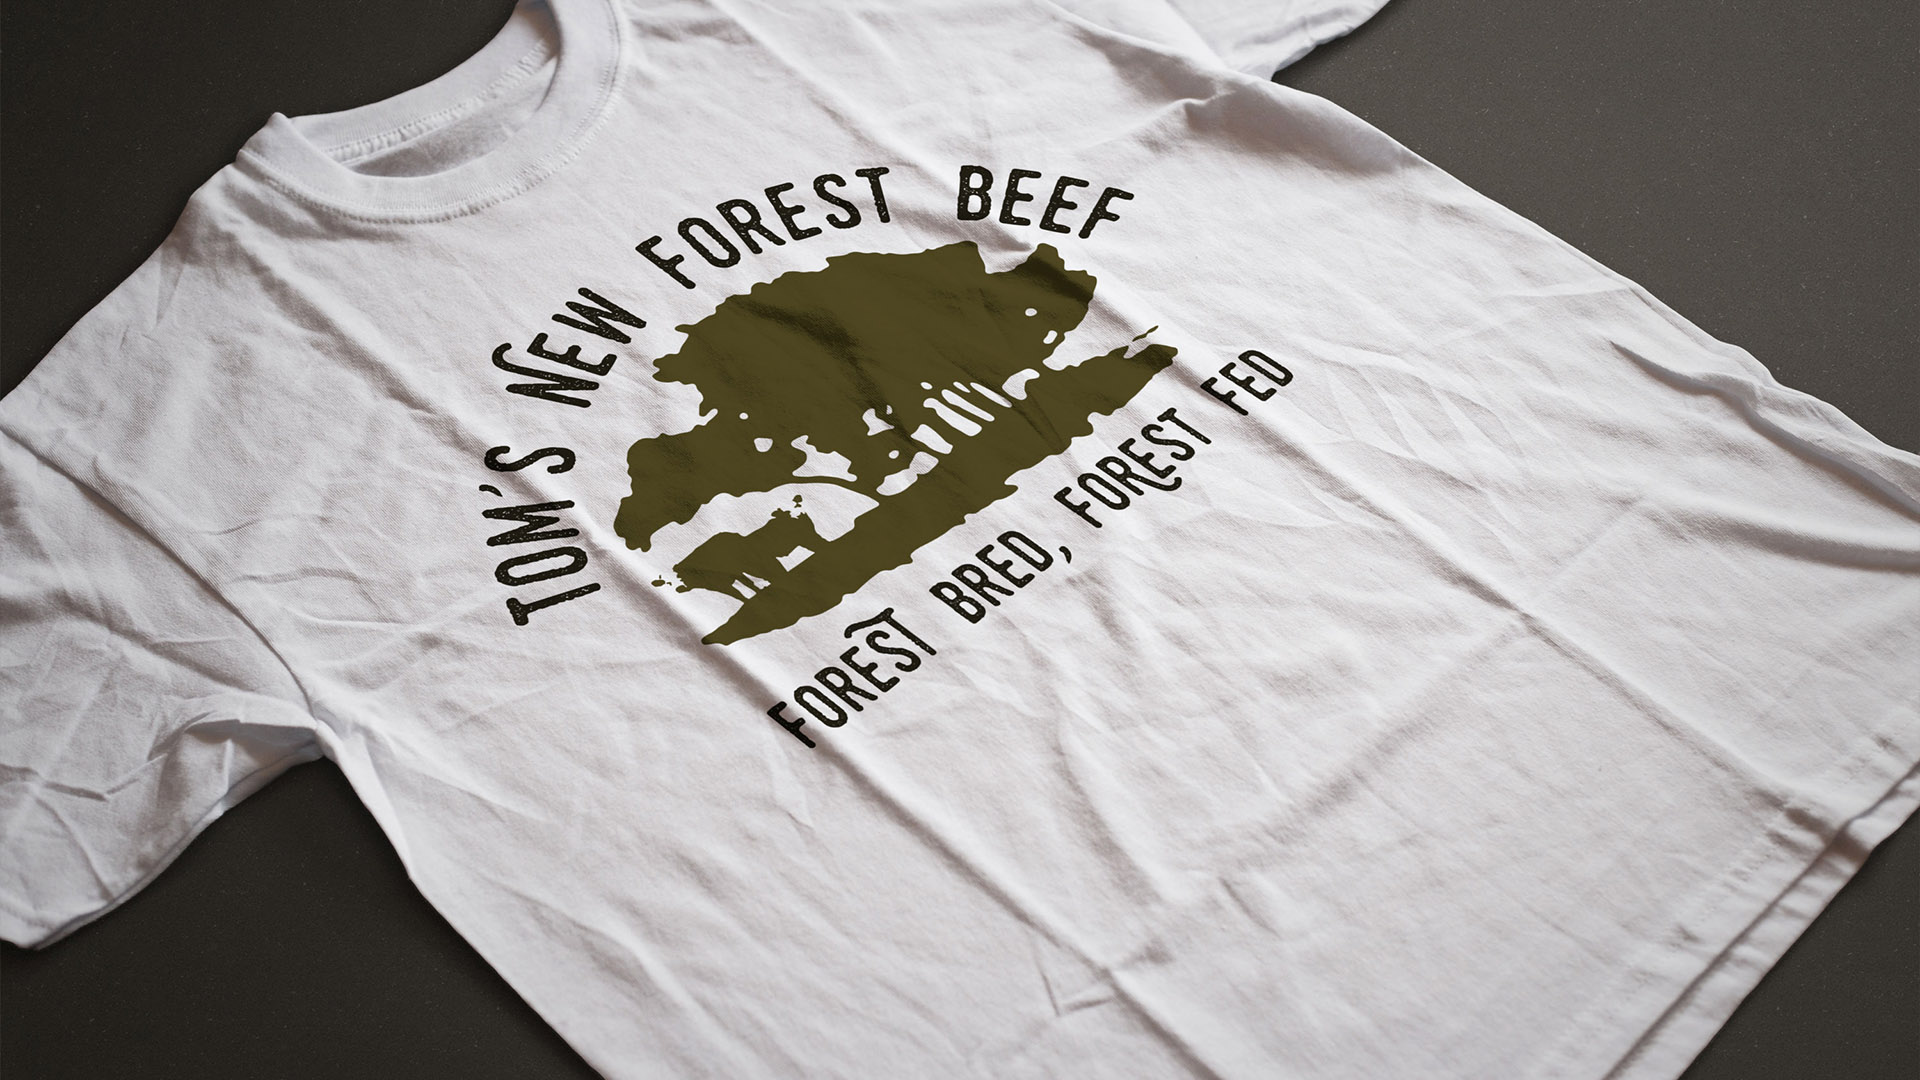 Tom's New Forest Beef Tshirt Design